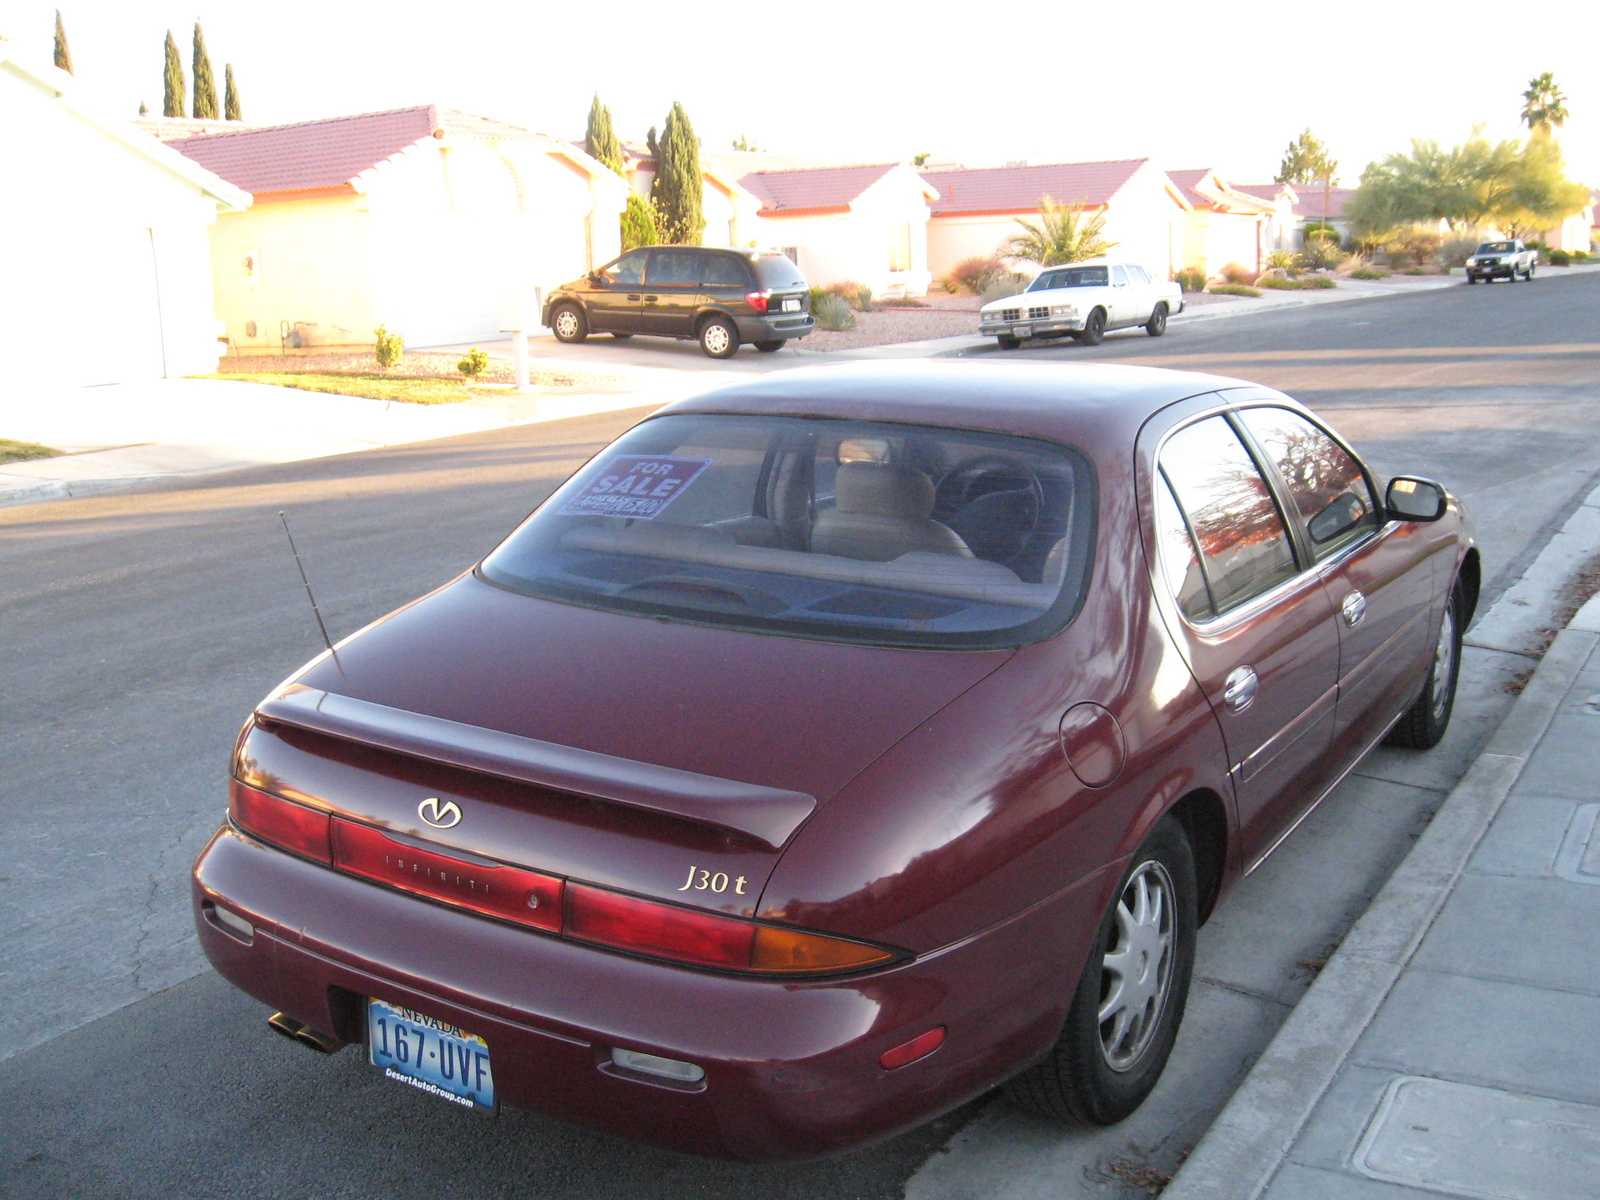 1993 Infiniti J30   pictures, information and specs - Auto